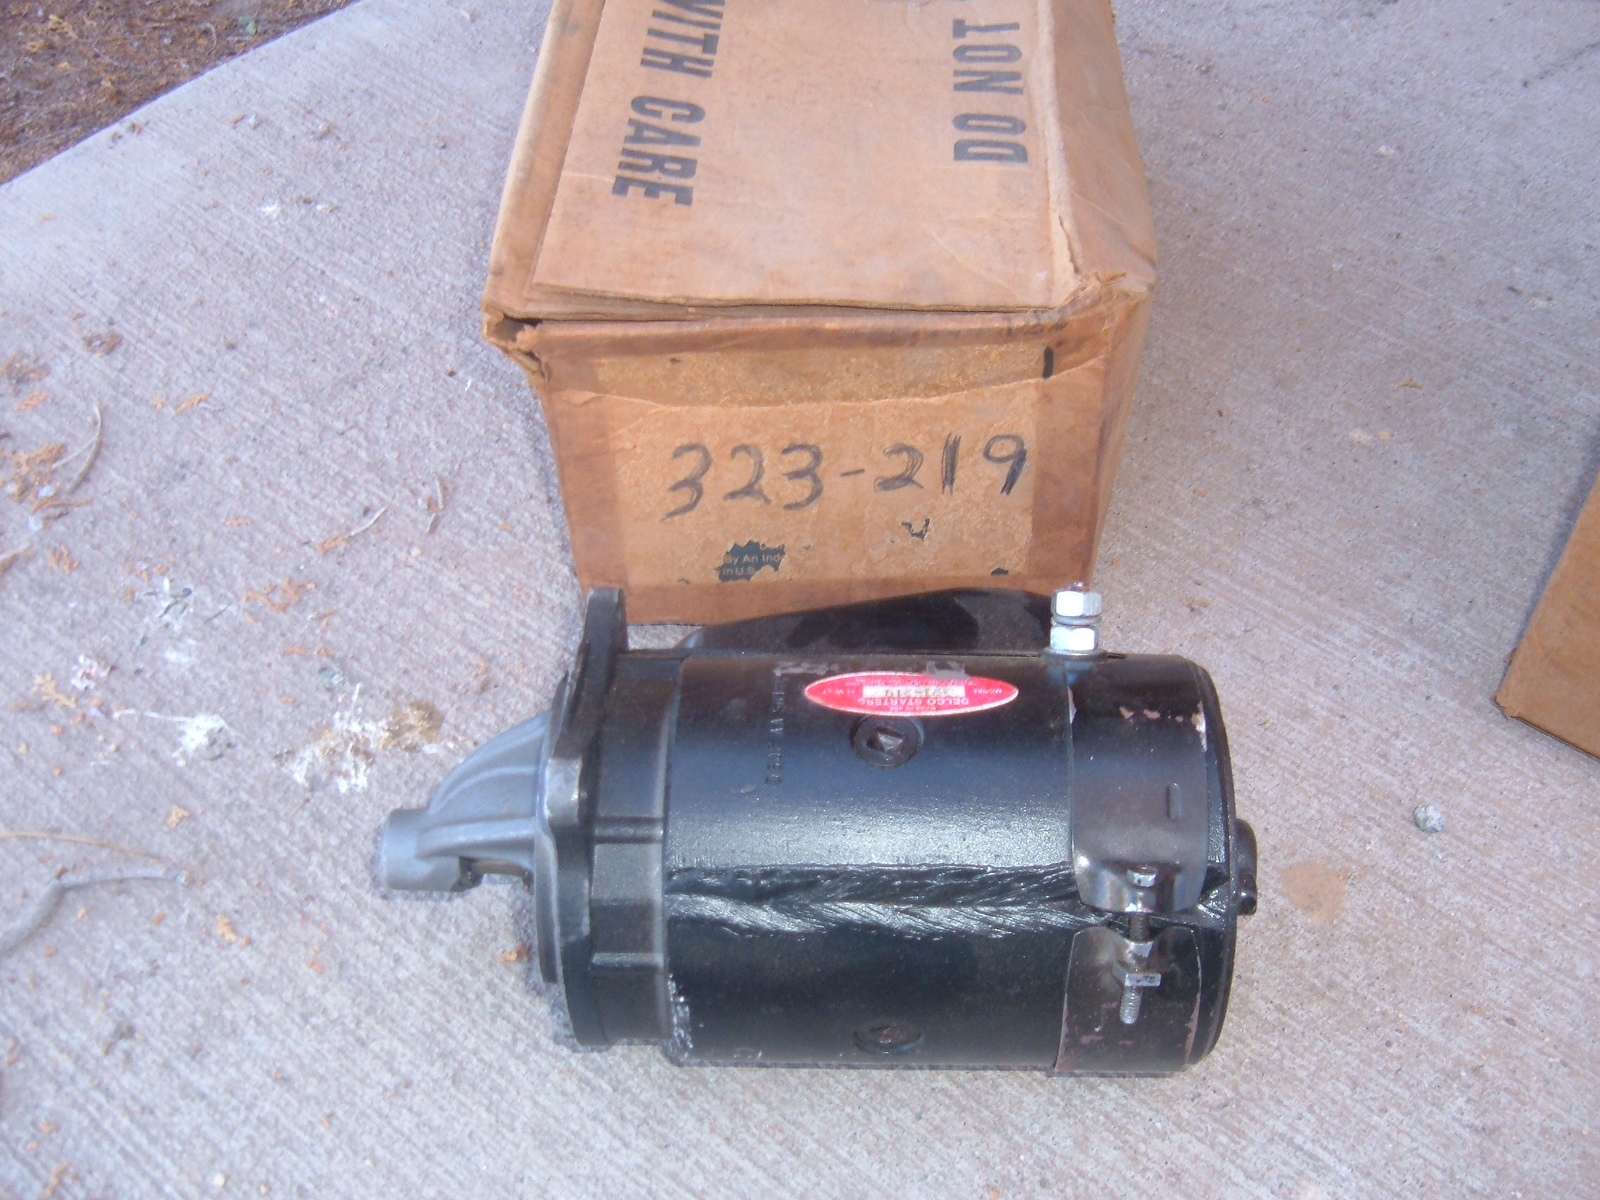 View Product1962 69 ford falcon fairlane starter rebuilt #323-219 (z 323219)